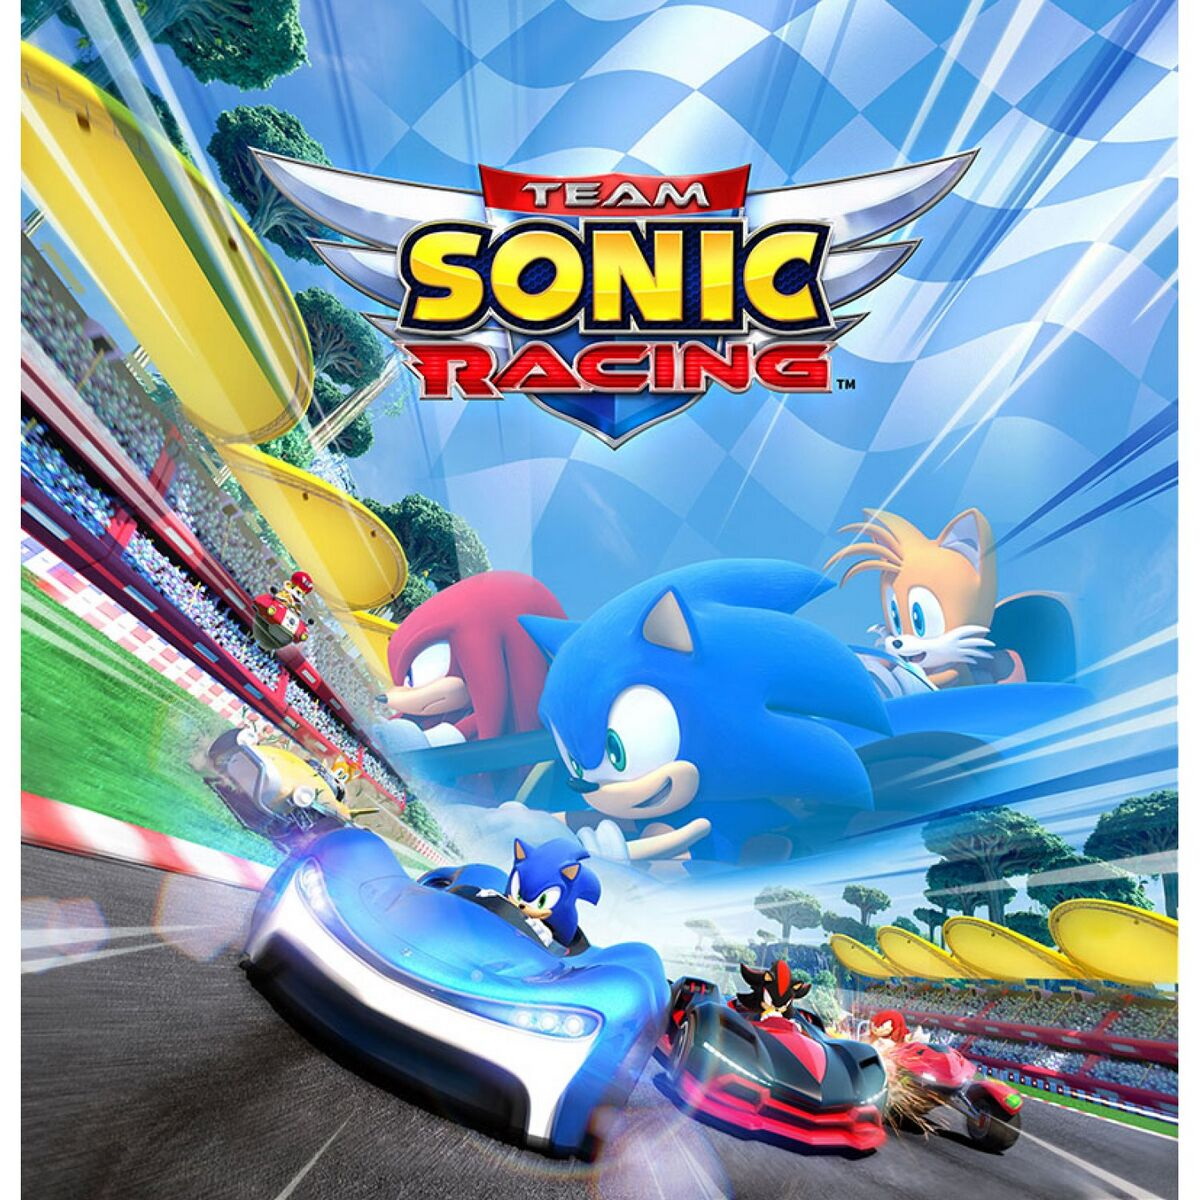 Team Sonic Racing Awesome Games Wiki Uncensored